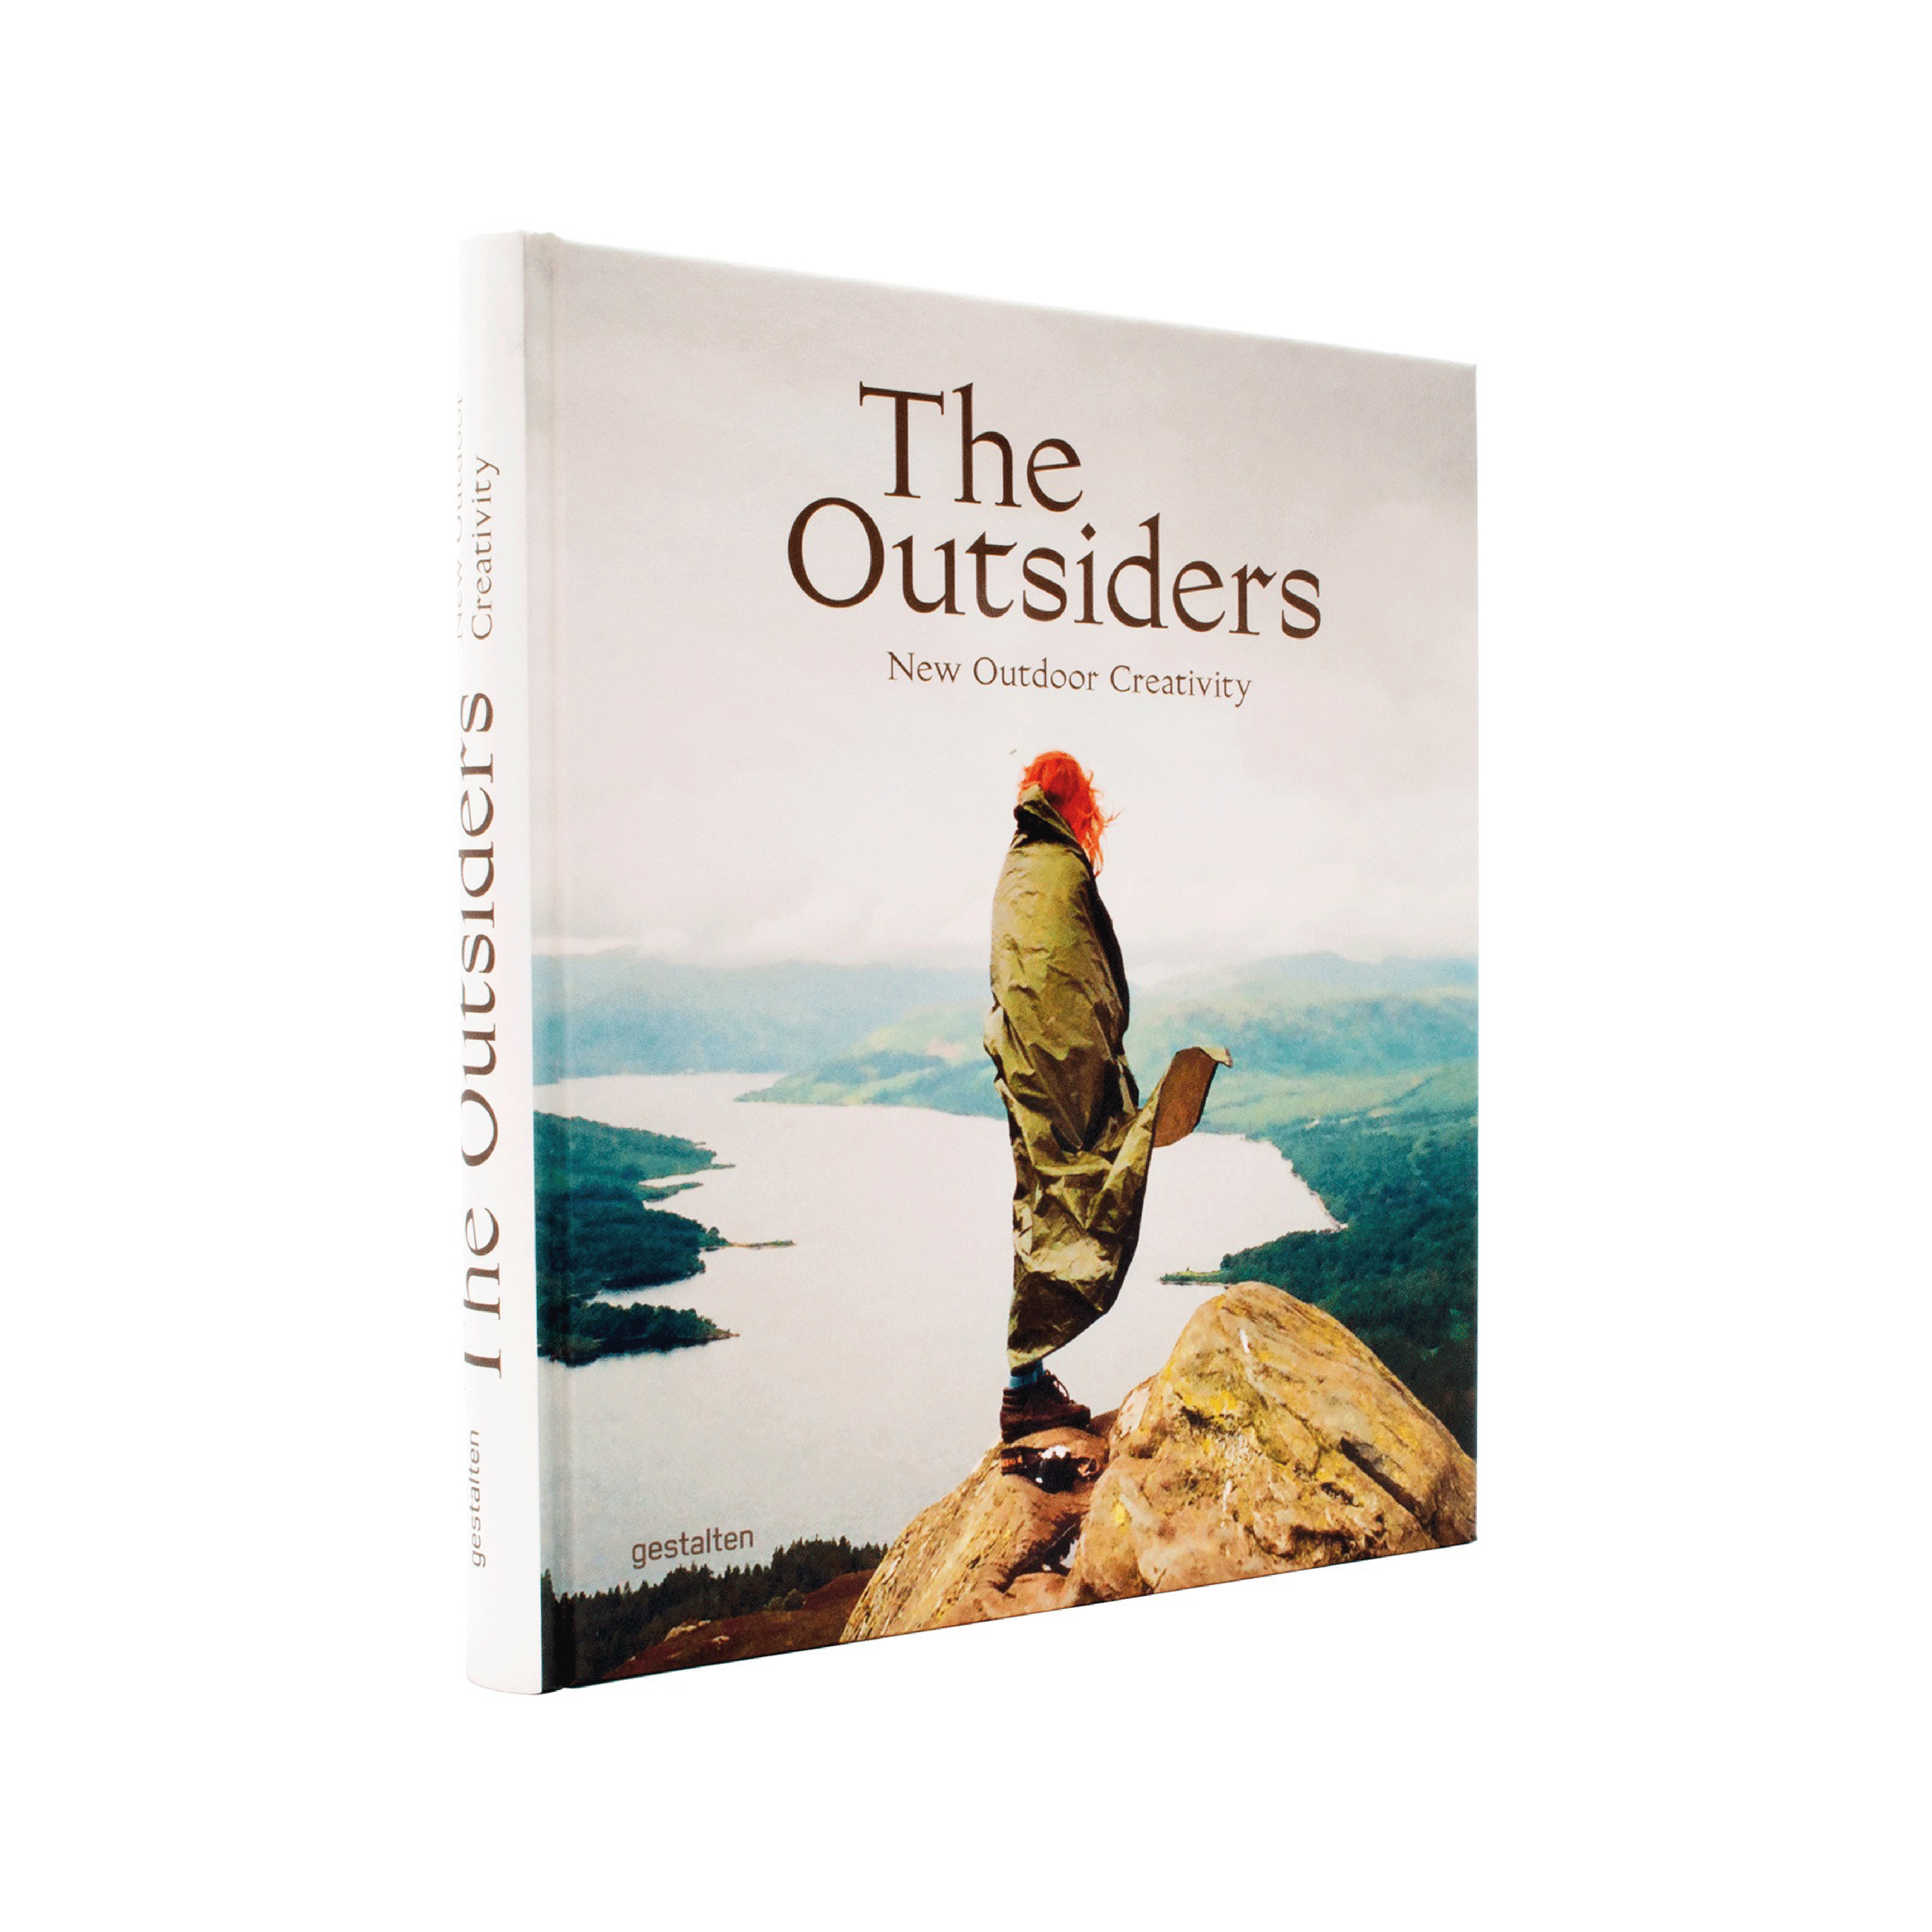 THE OUTSIDERS    By      Gestalten     The refreshing and evolving ethos of today's smartly successful outdoor and lifestyle entrepreneurs.    SHOP NOW      £30